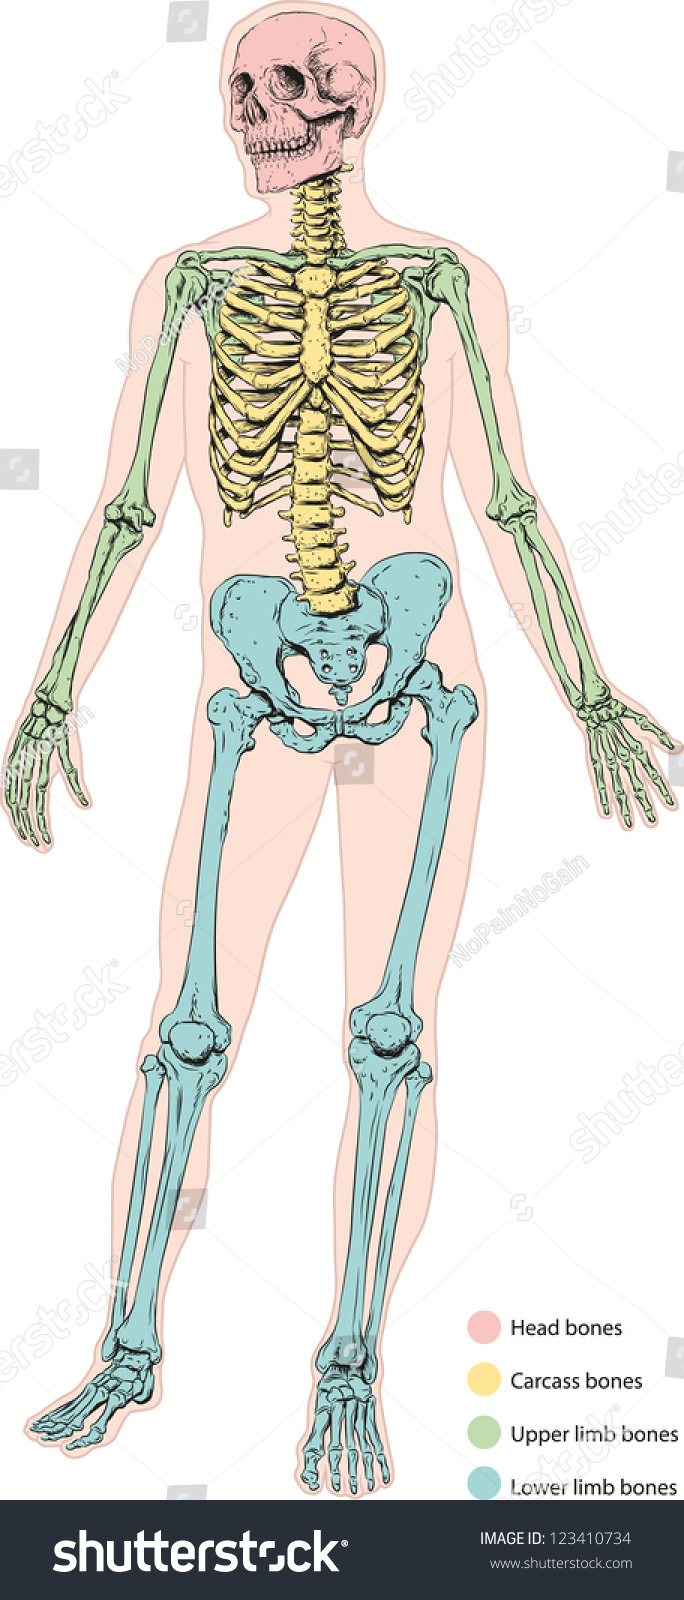 Human Skeletal System Stock Photo Photo Vector Illustration